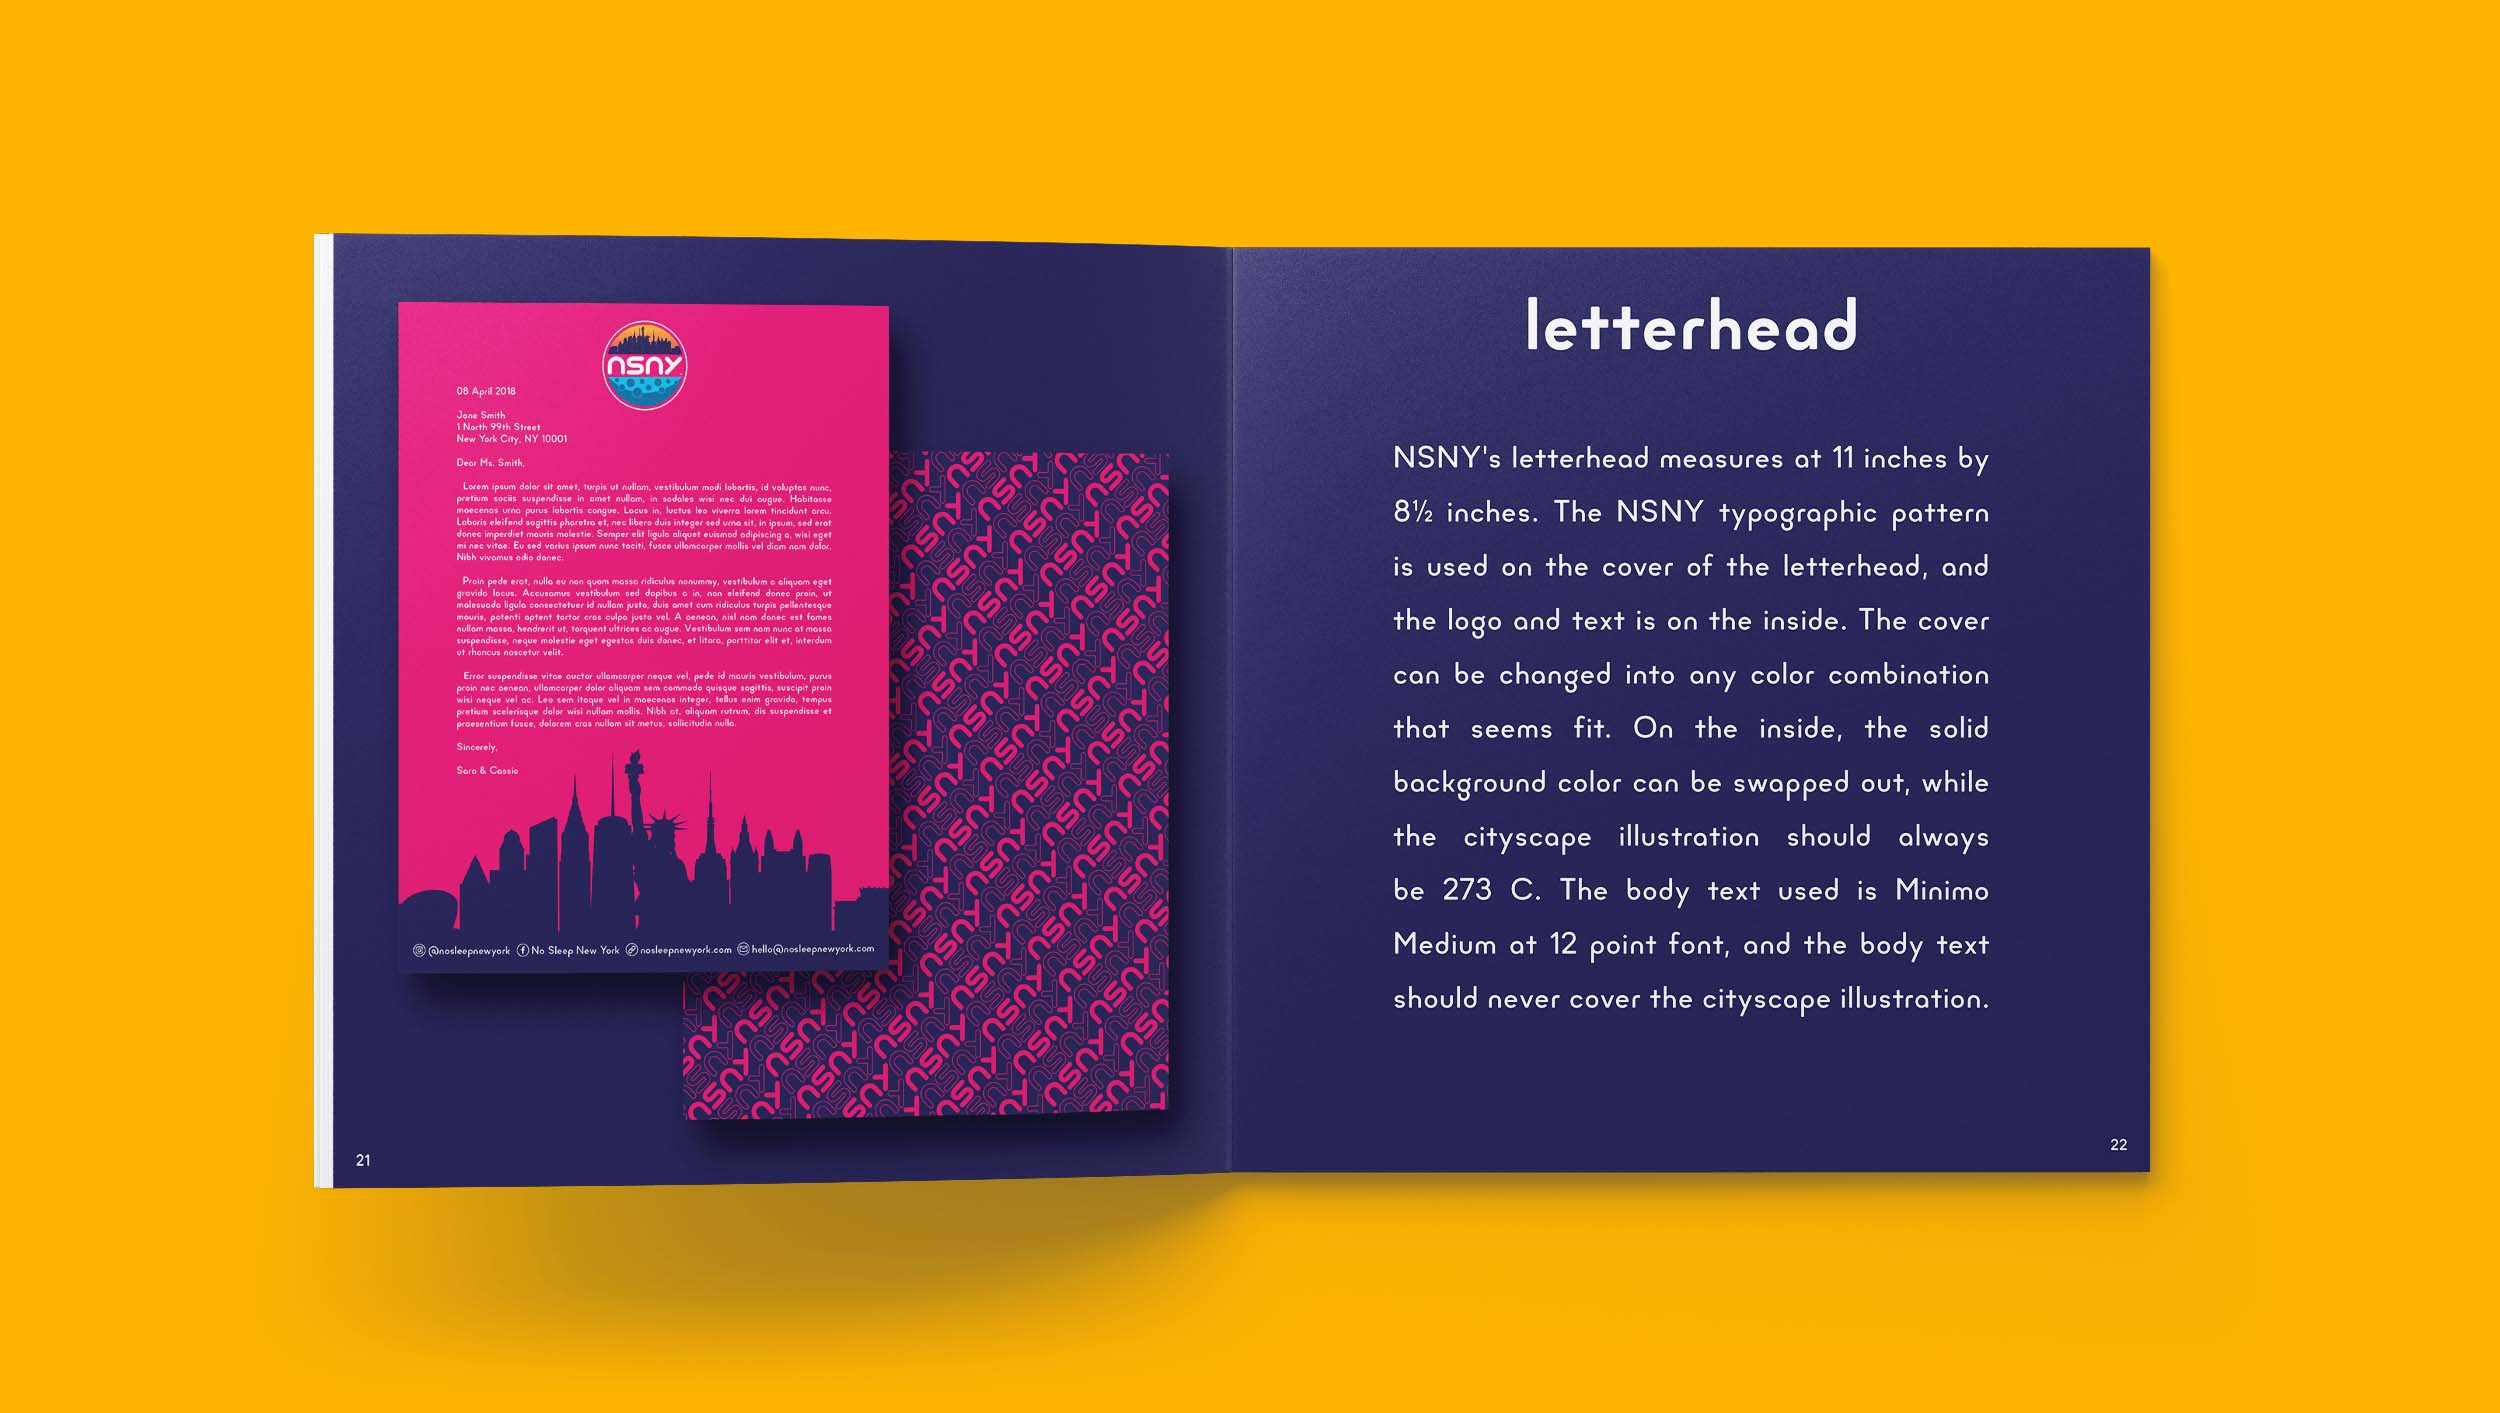 No Sleep New York Brand Guidelines Letterhead Design